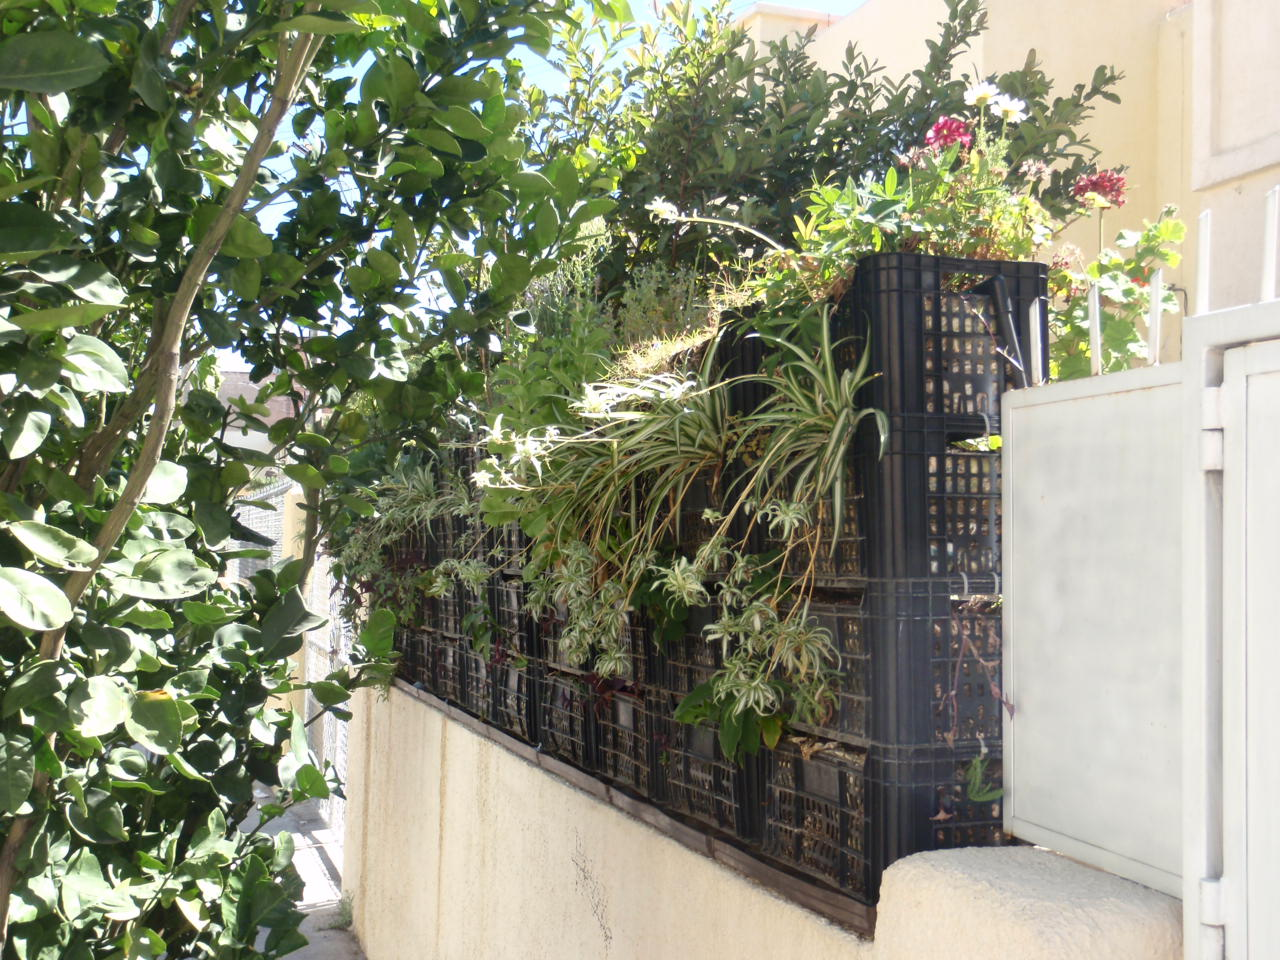 PeoplesPropertyRevolution Recycled Vertical Garden